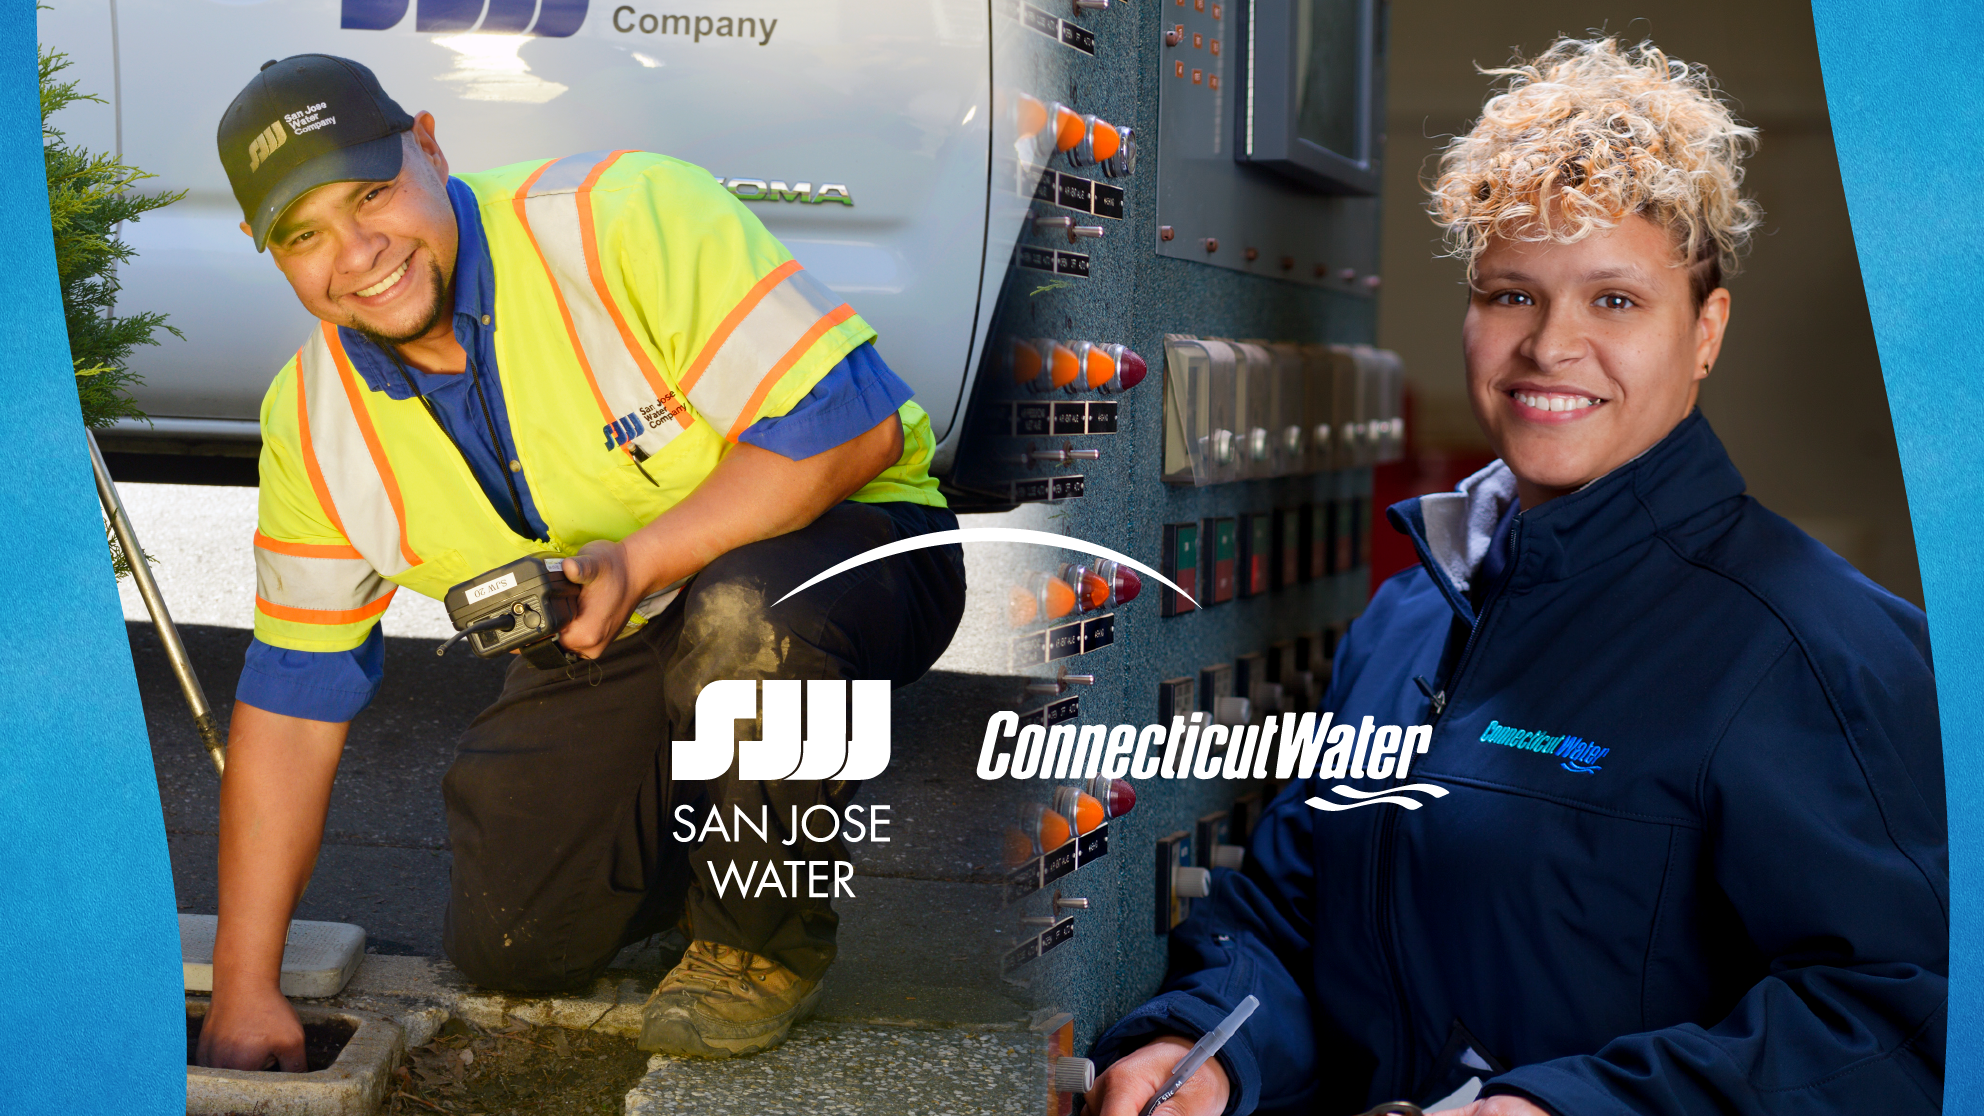 San Jose Water and Connecticut Water employees at work